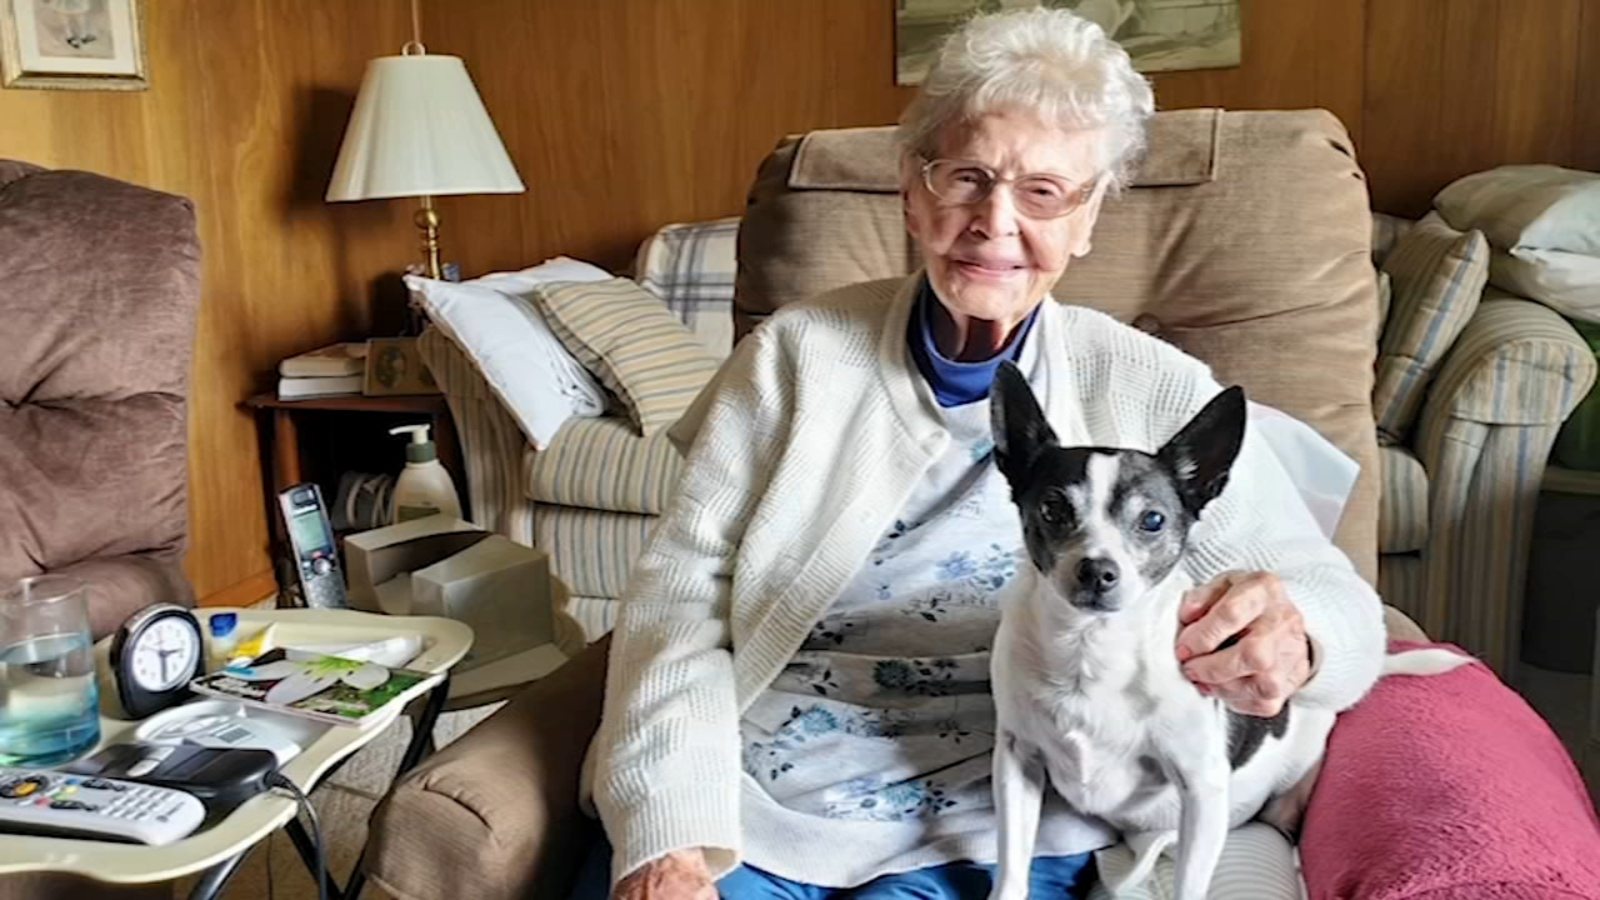 Woman who survived 1918 Spanish flu pandemic, said follow the rules to survive coronavirus, dies at 105